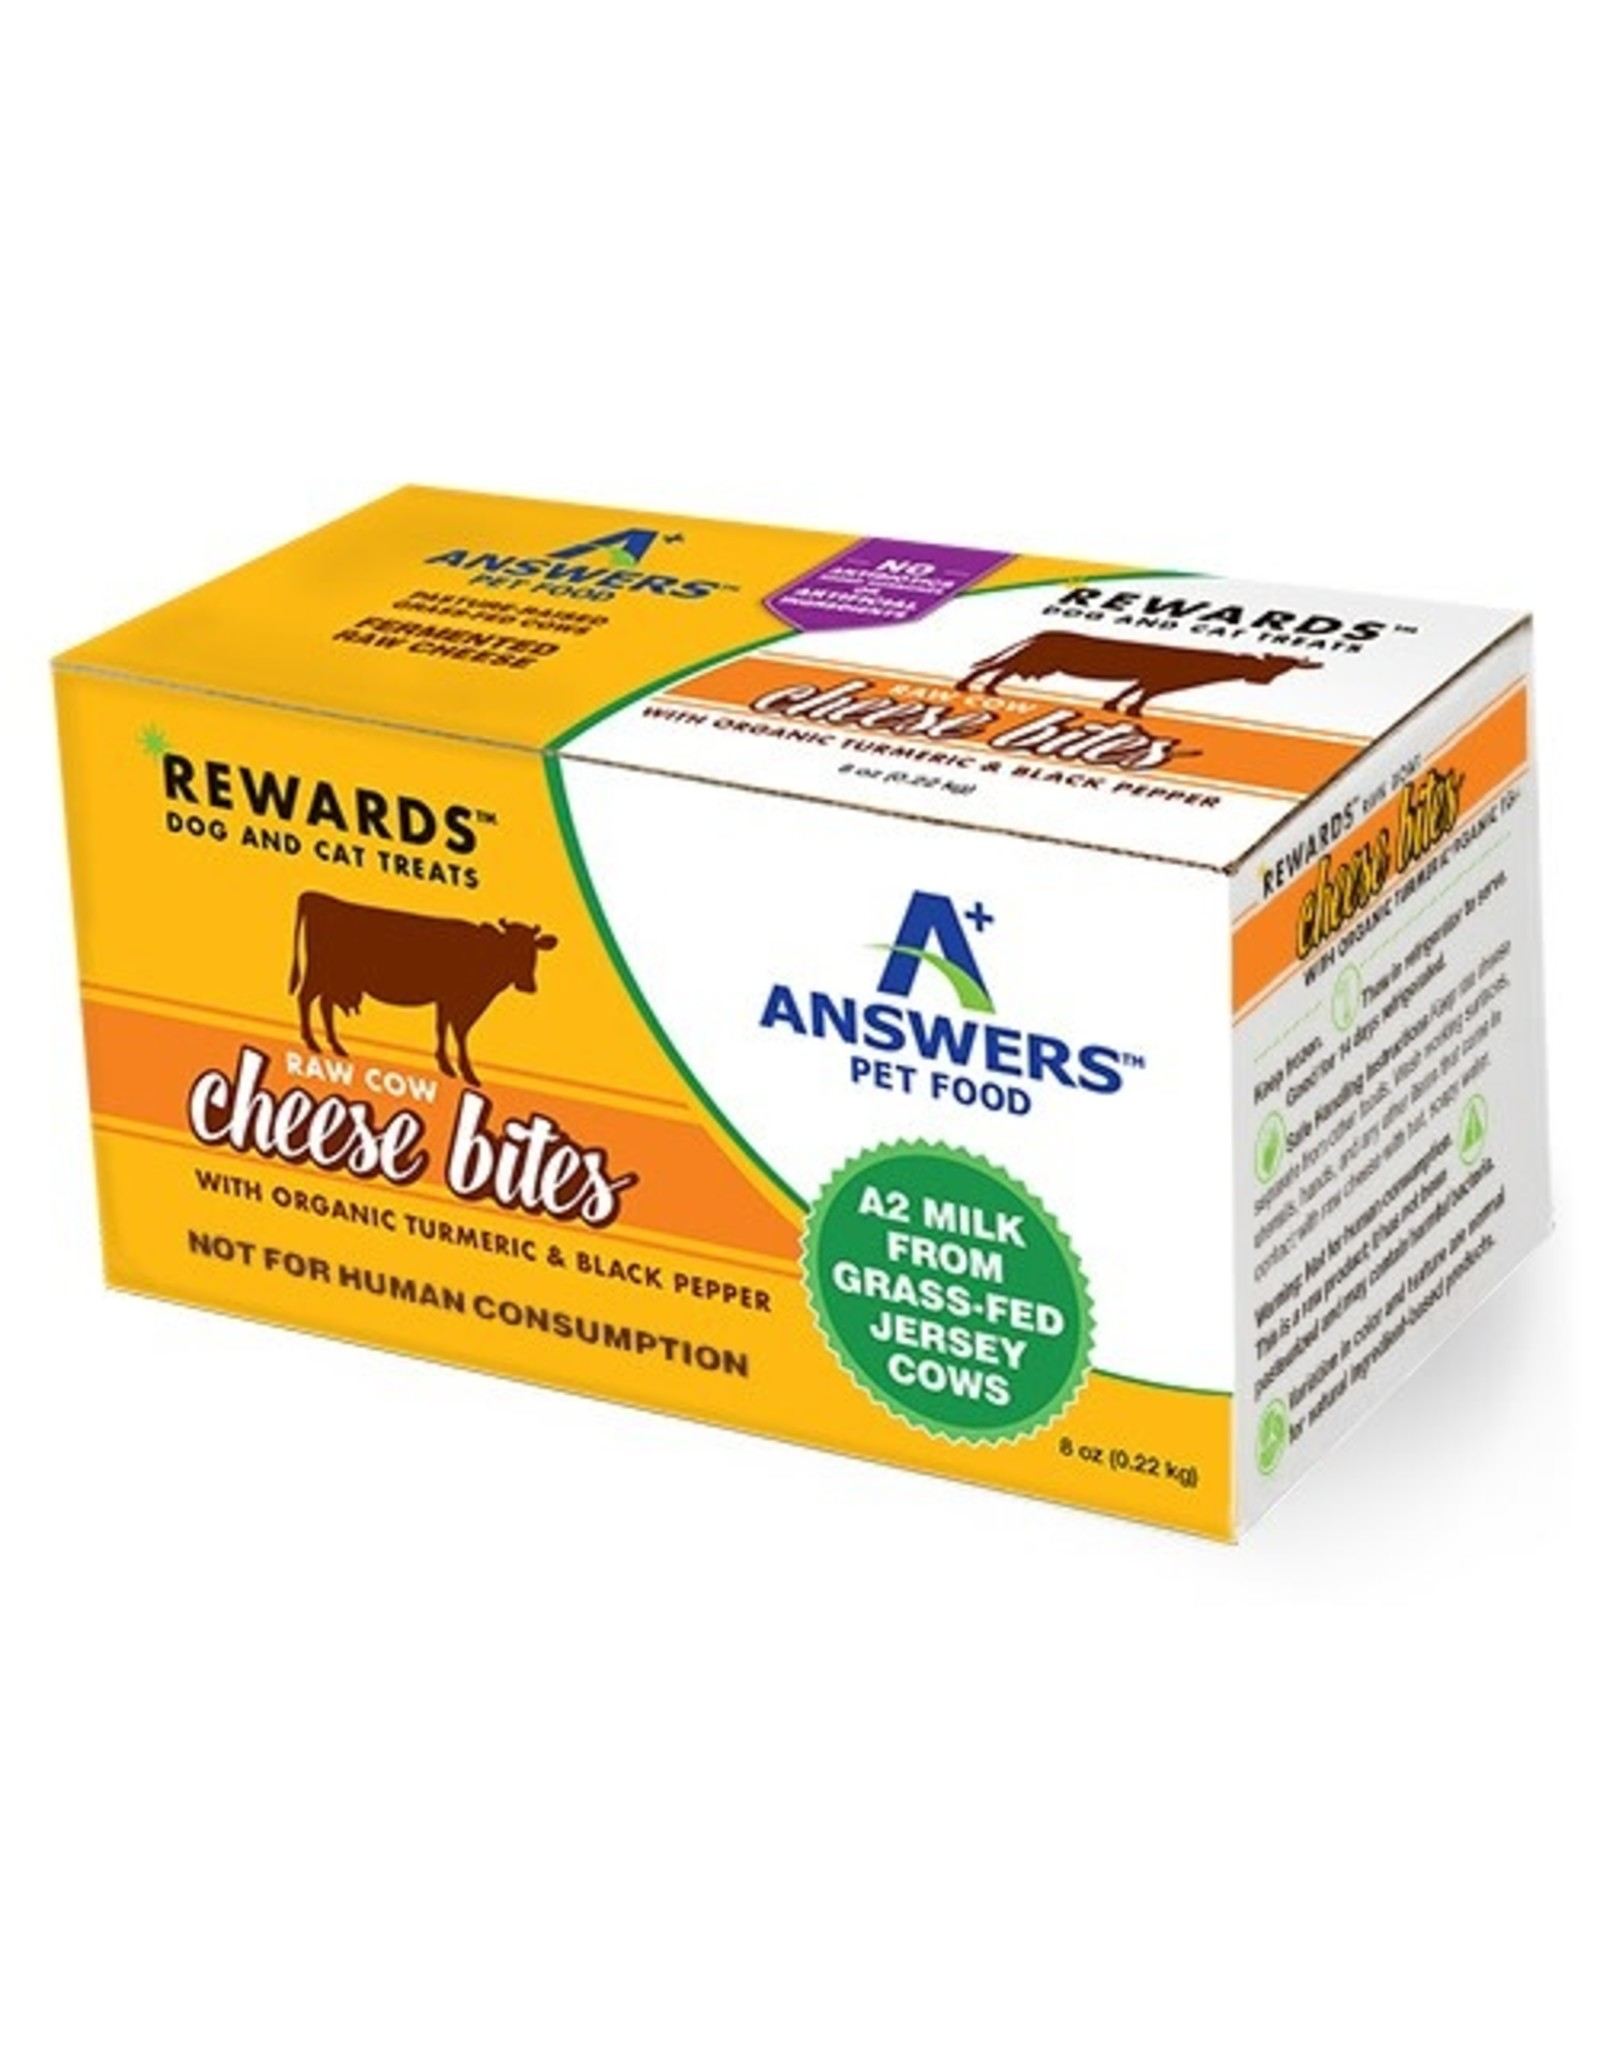 Answers Pet Food ANSWERS RAW COW CHEESE BITES WITH ORGANIC TURMERIC & BLACK PEPPER 8OZ